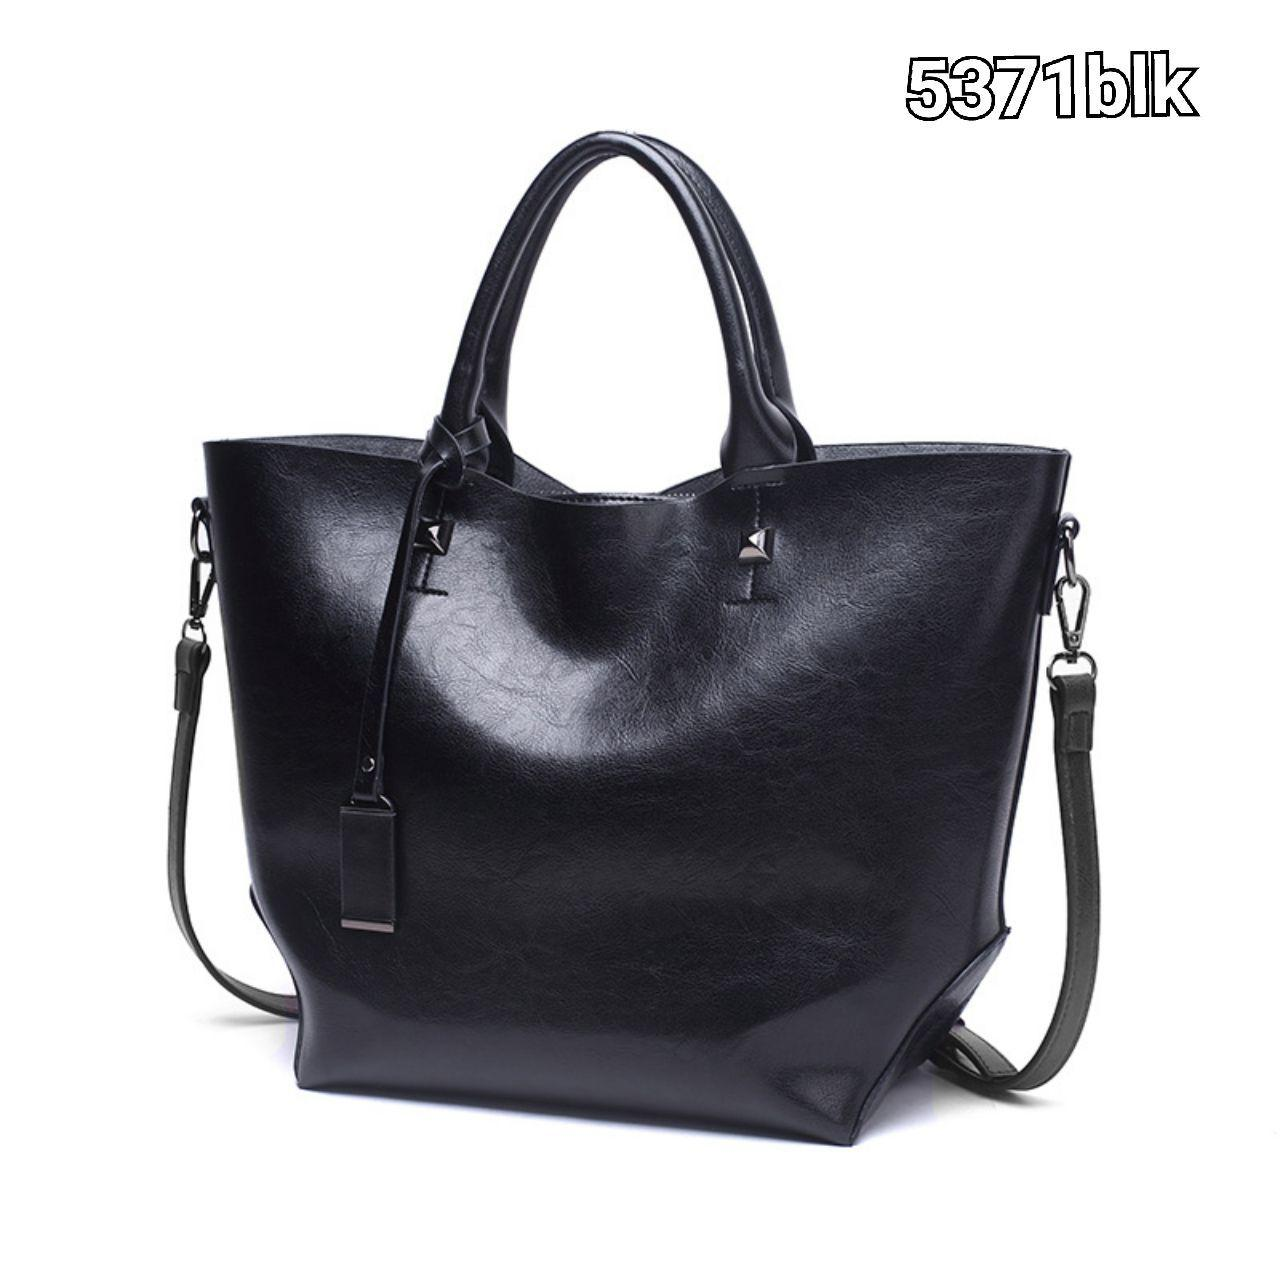 5371 Simple Elegant Pu Leather Handbag (Black)